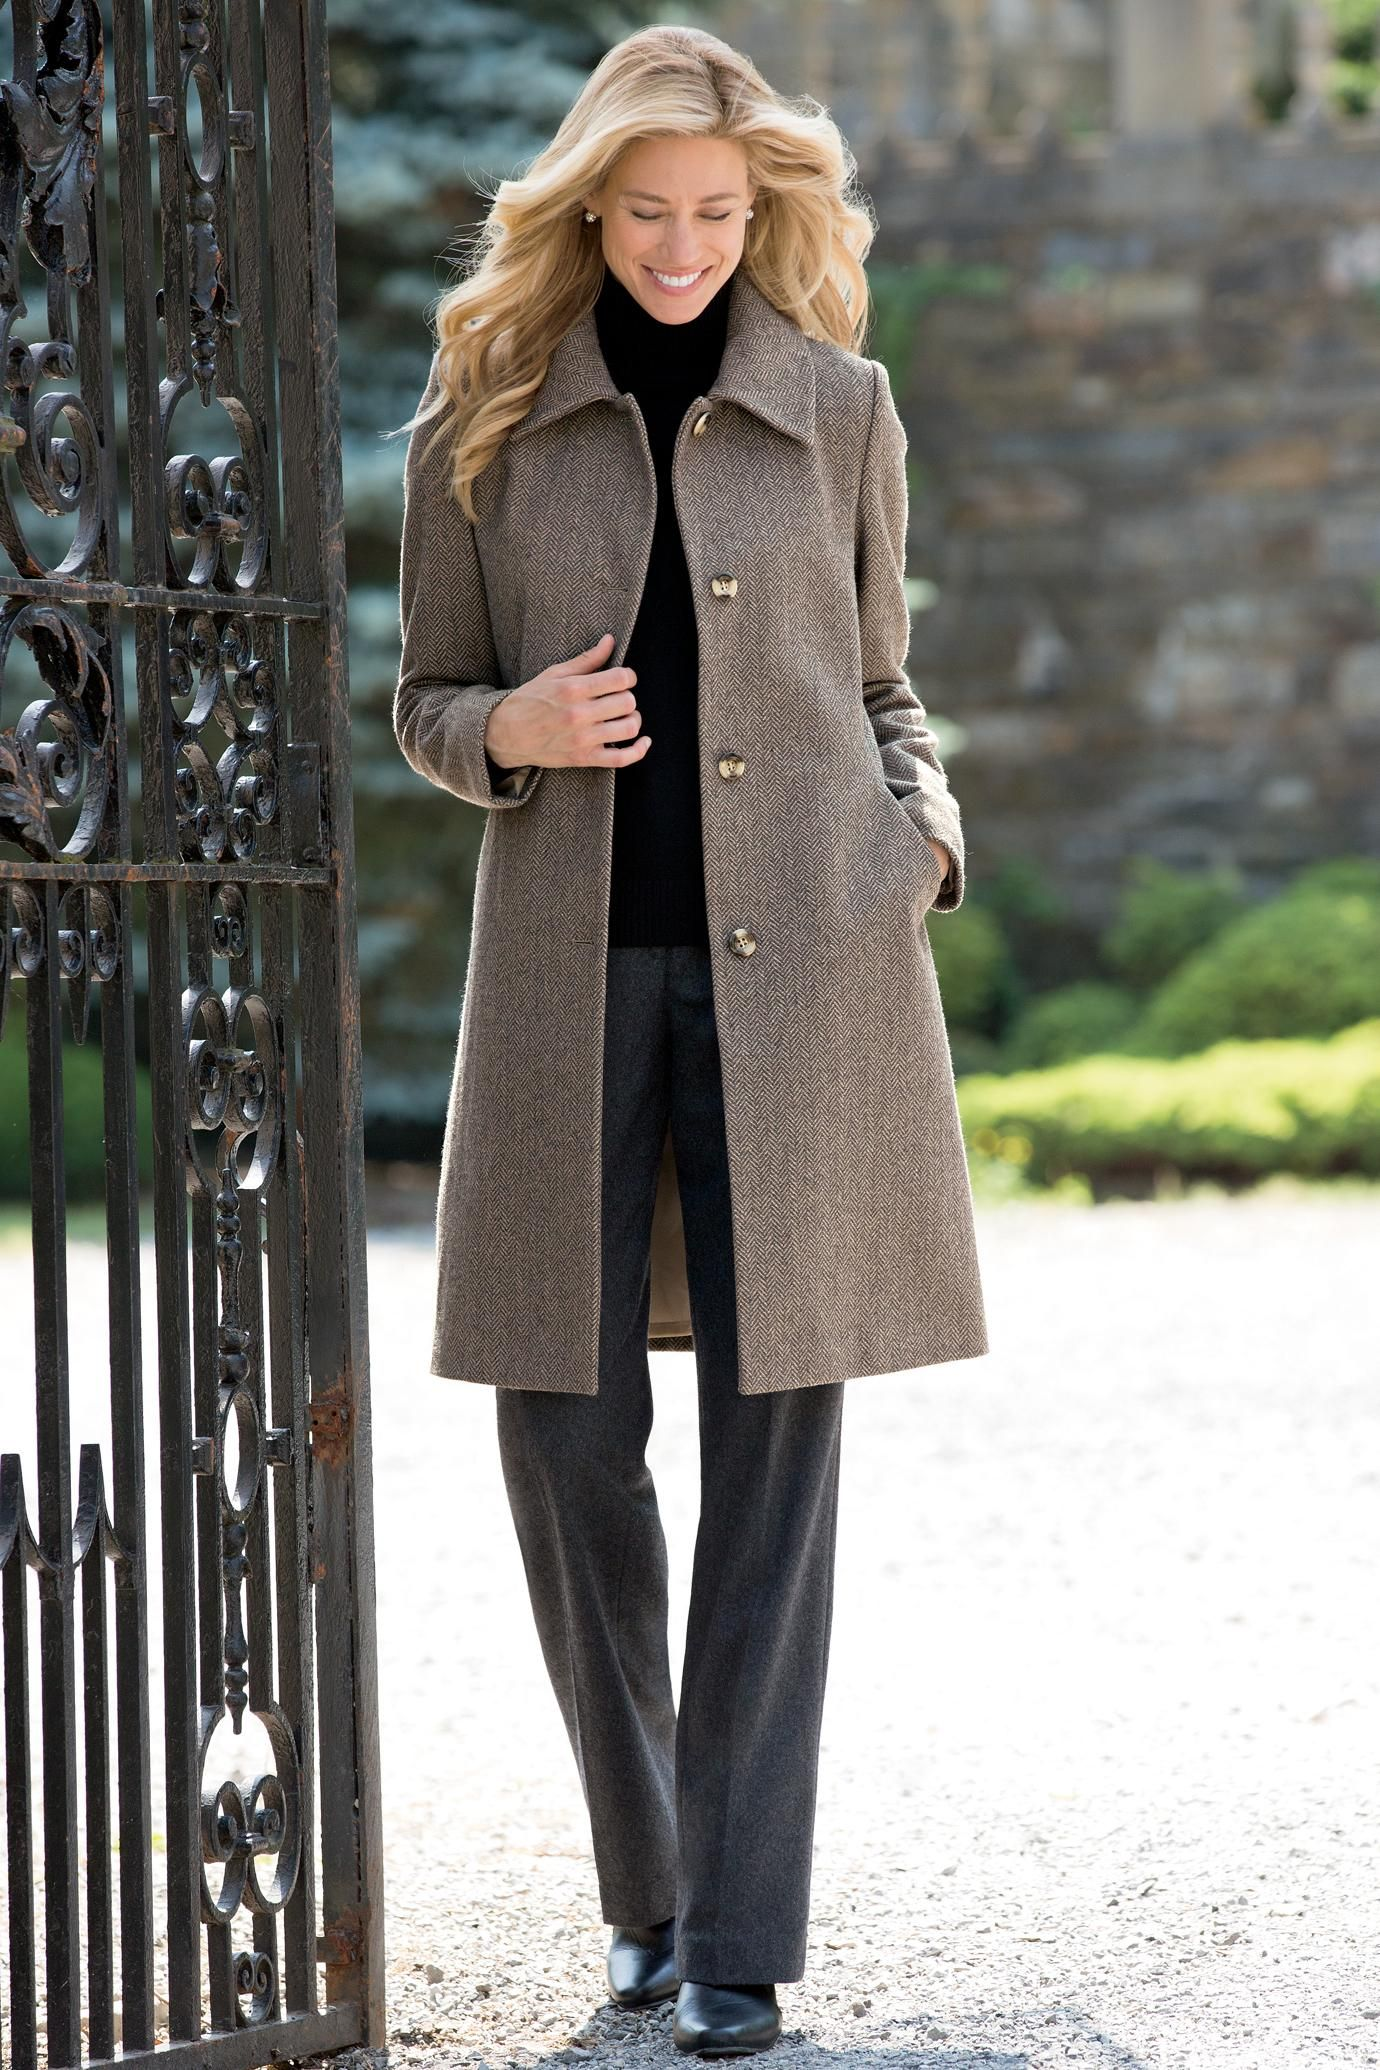 Women's Classic 3/4 Length Wool Coat | Chadwicks of Boston ...